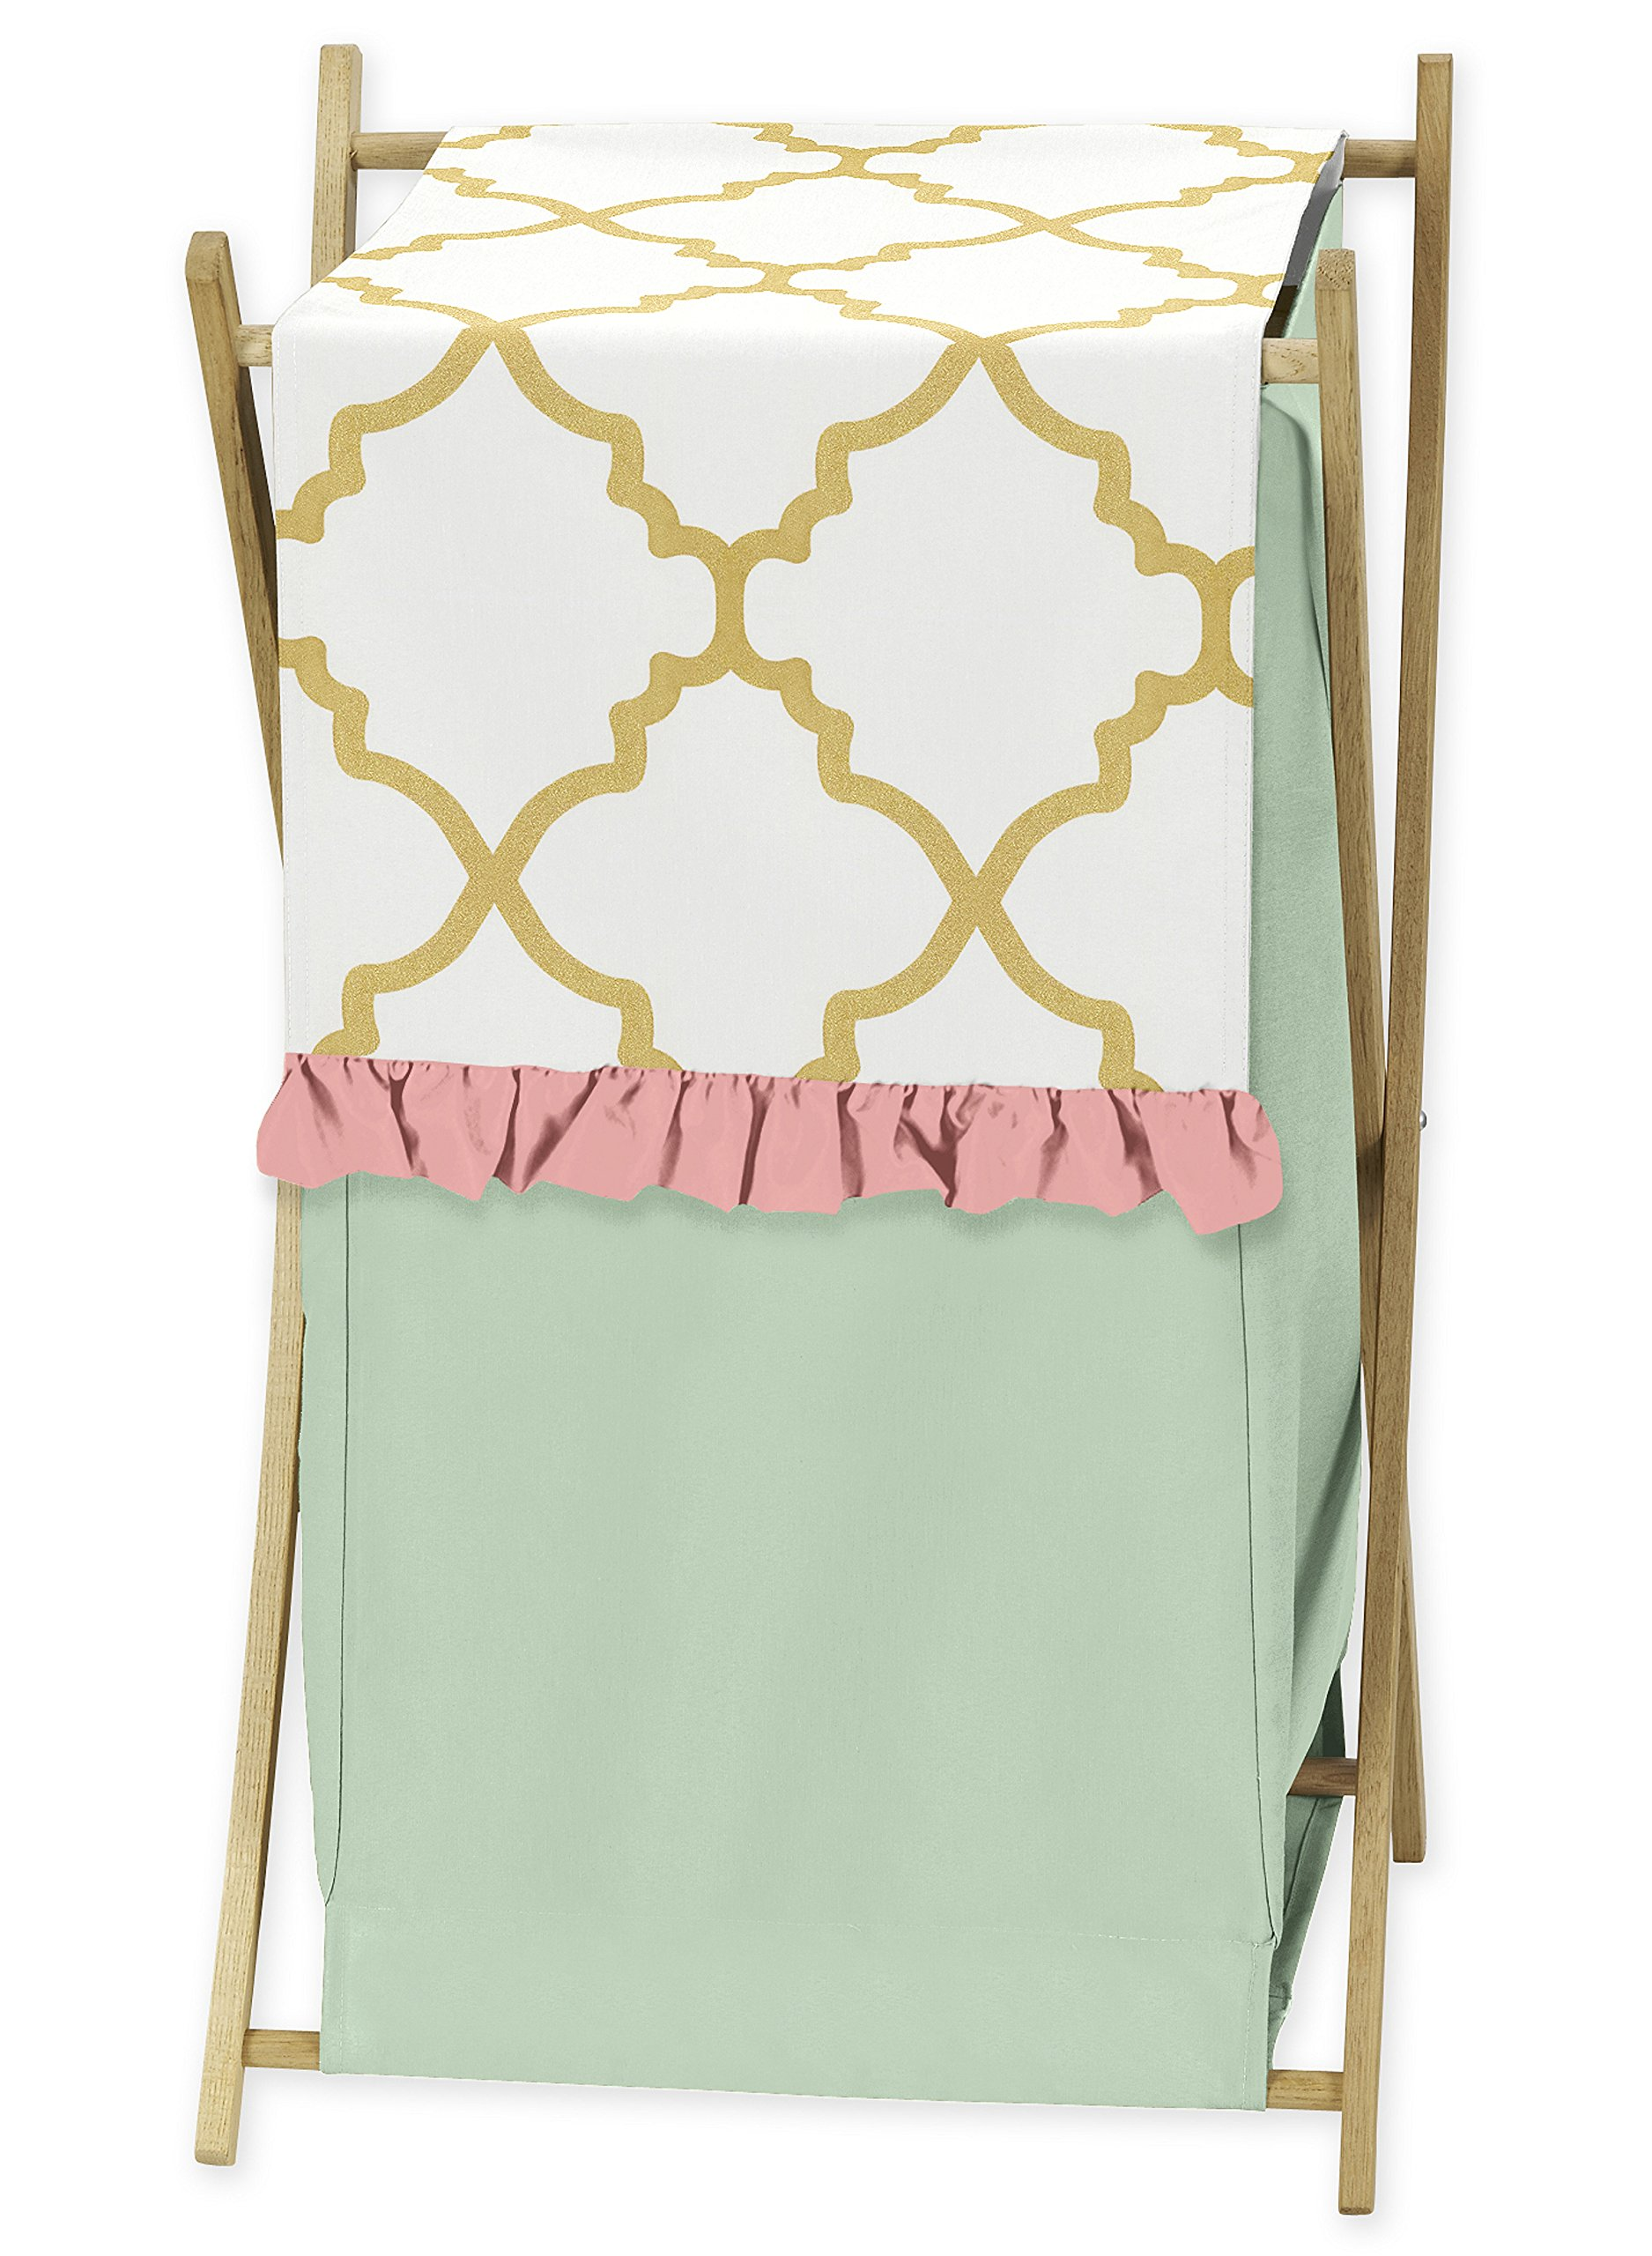 Sweet Jojo Designs Clothes Laundry Hamper for Ava Mint Coral White and Gold Trellis Girls Bedding Collection